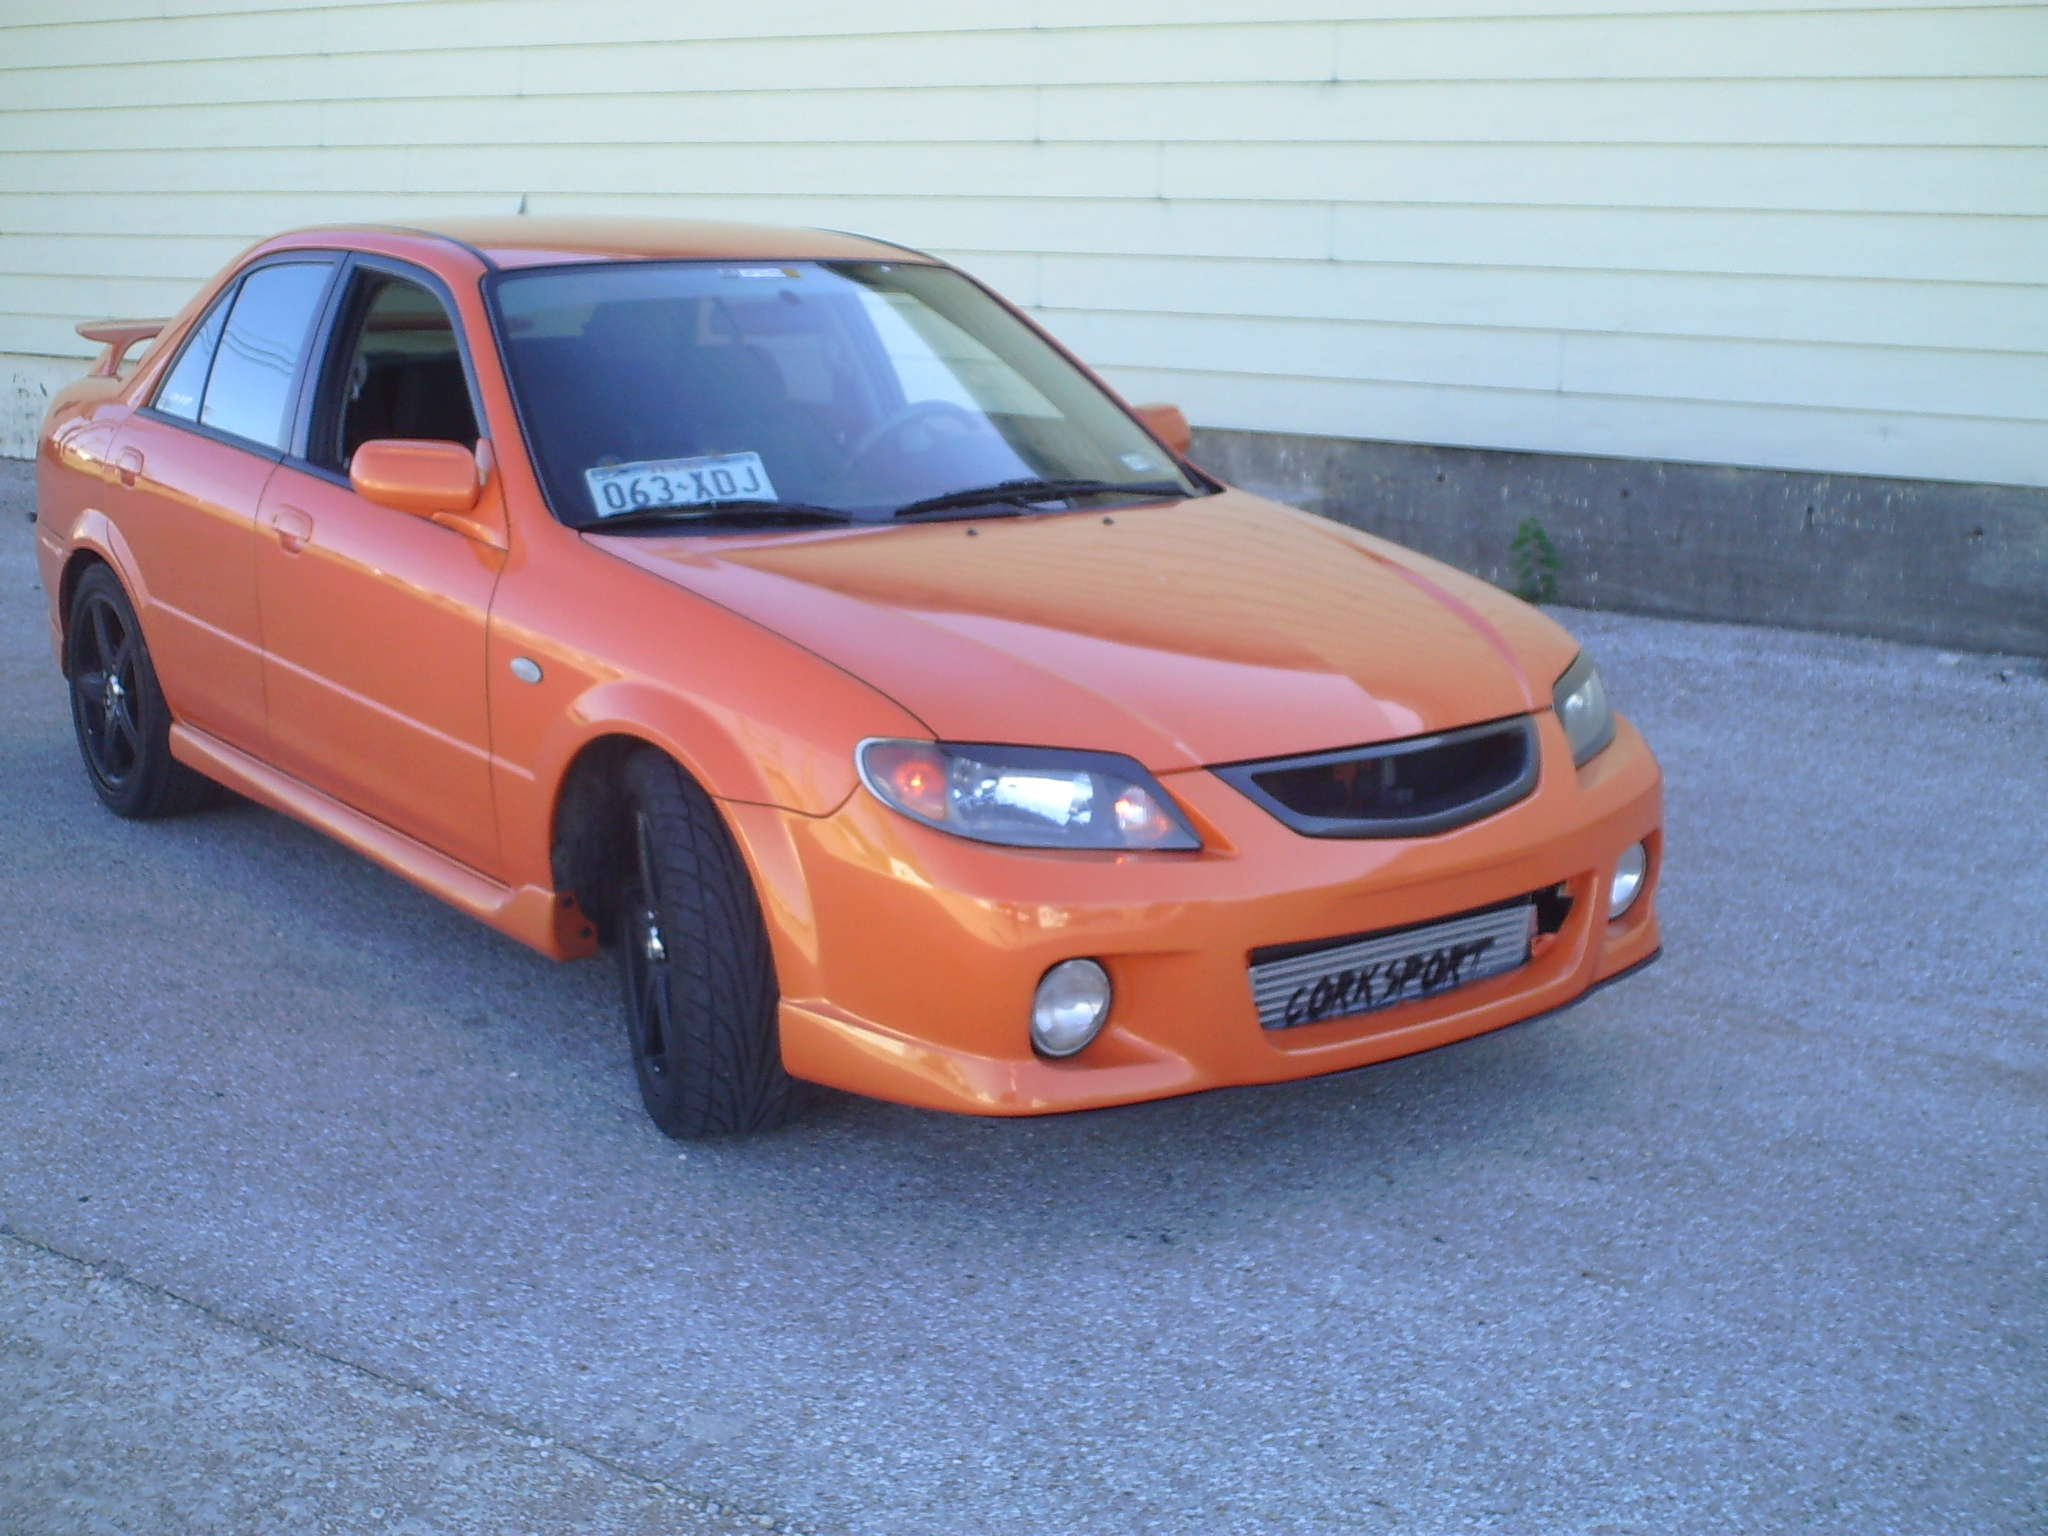 Another Marios-03_MSP 2003 Mazda Protege post... - 12572593